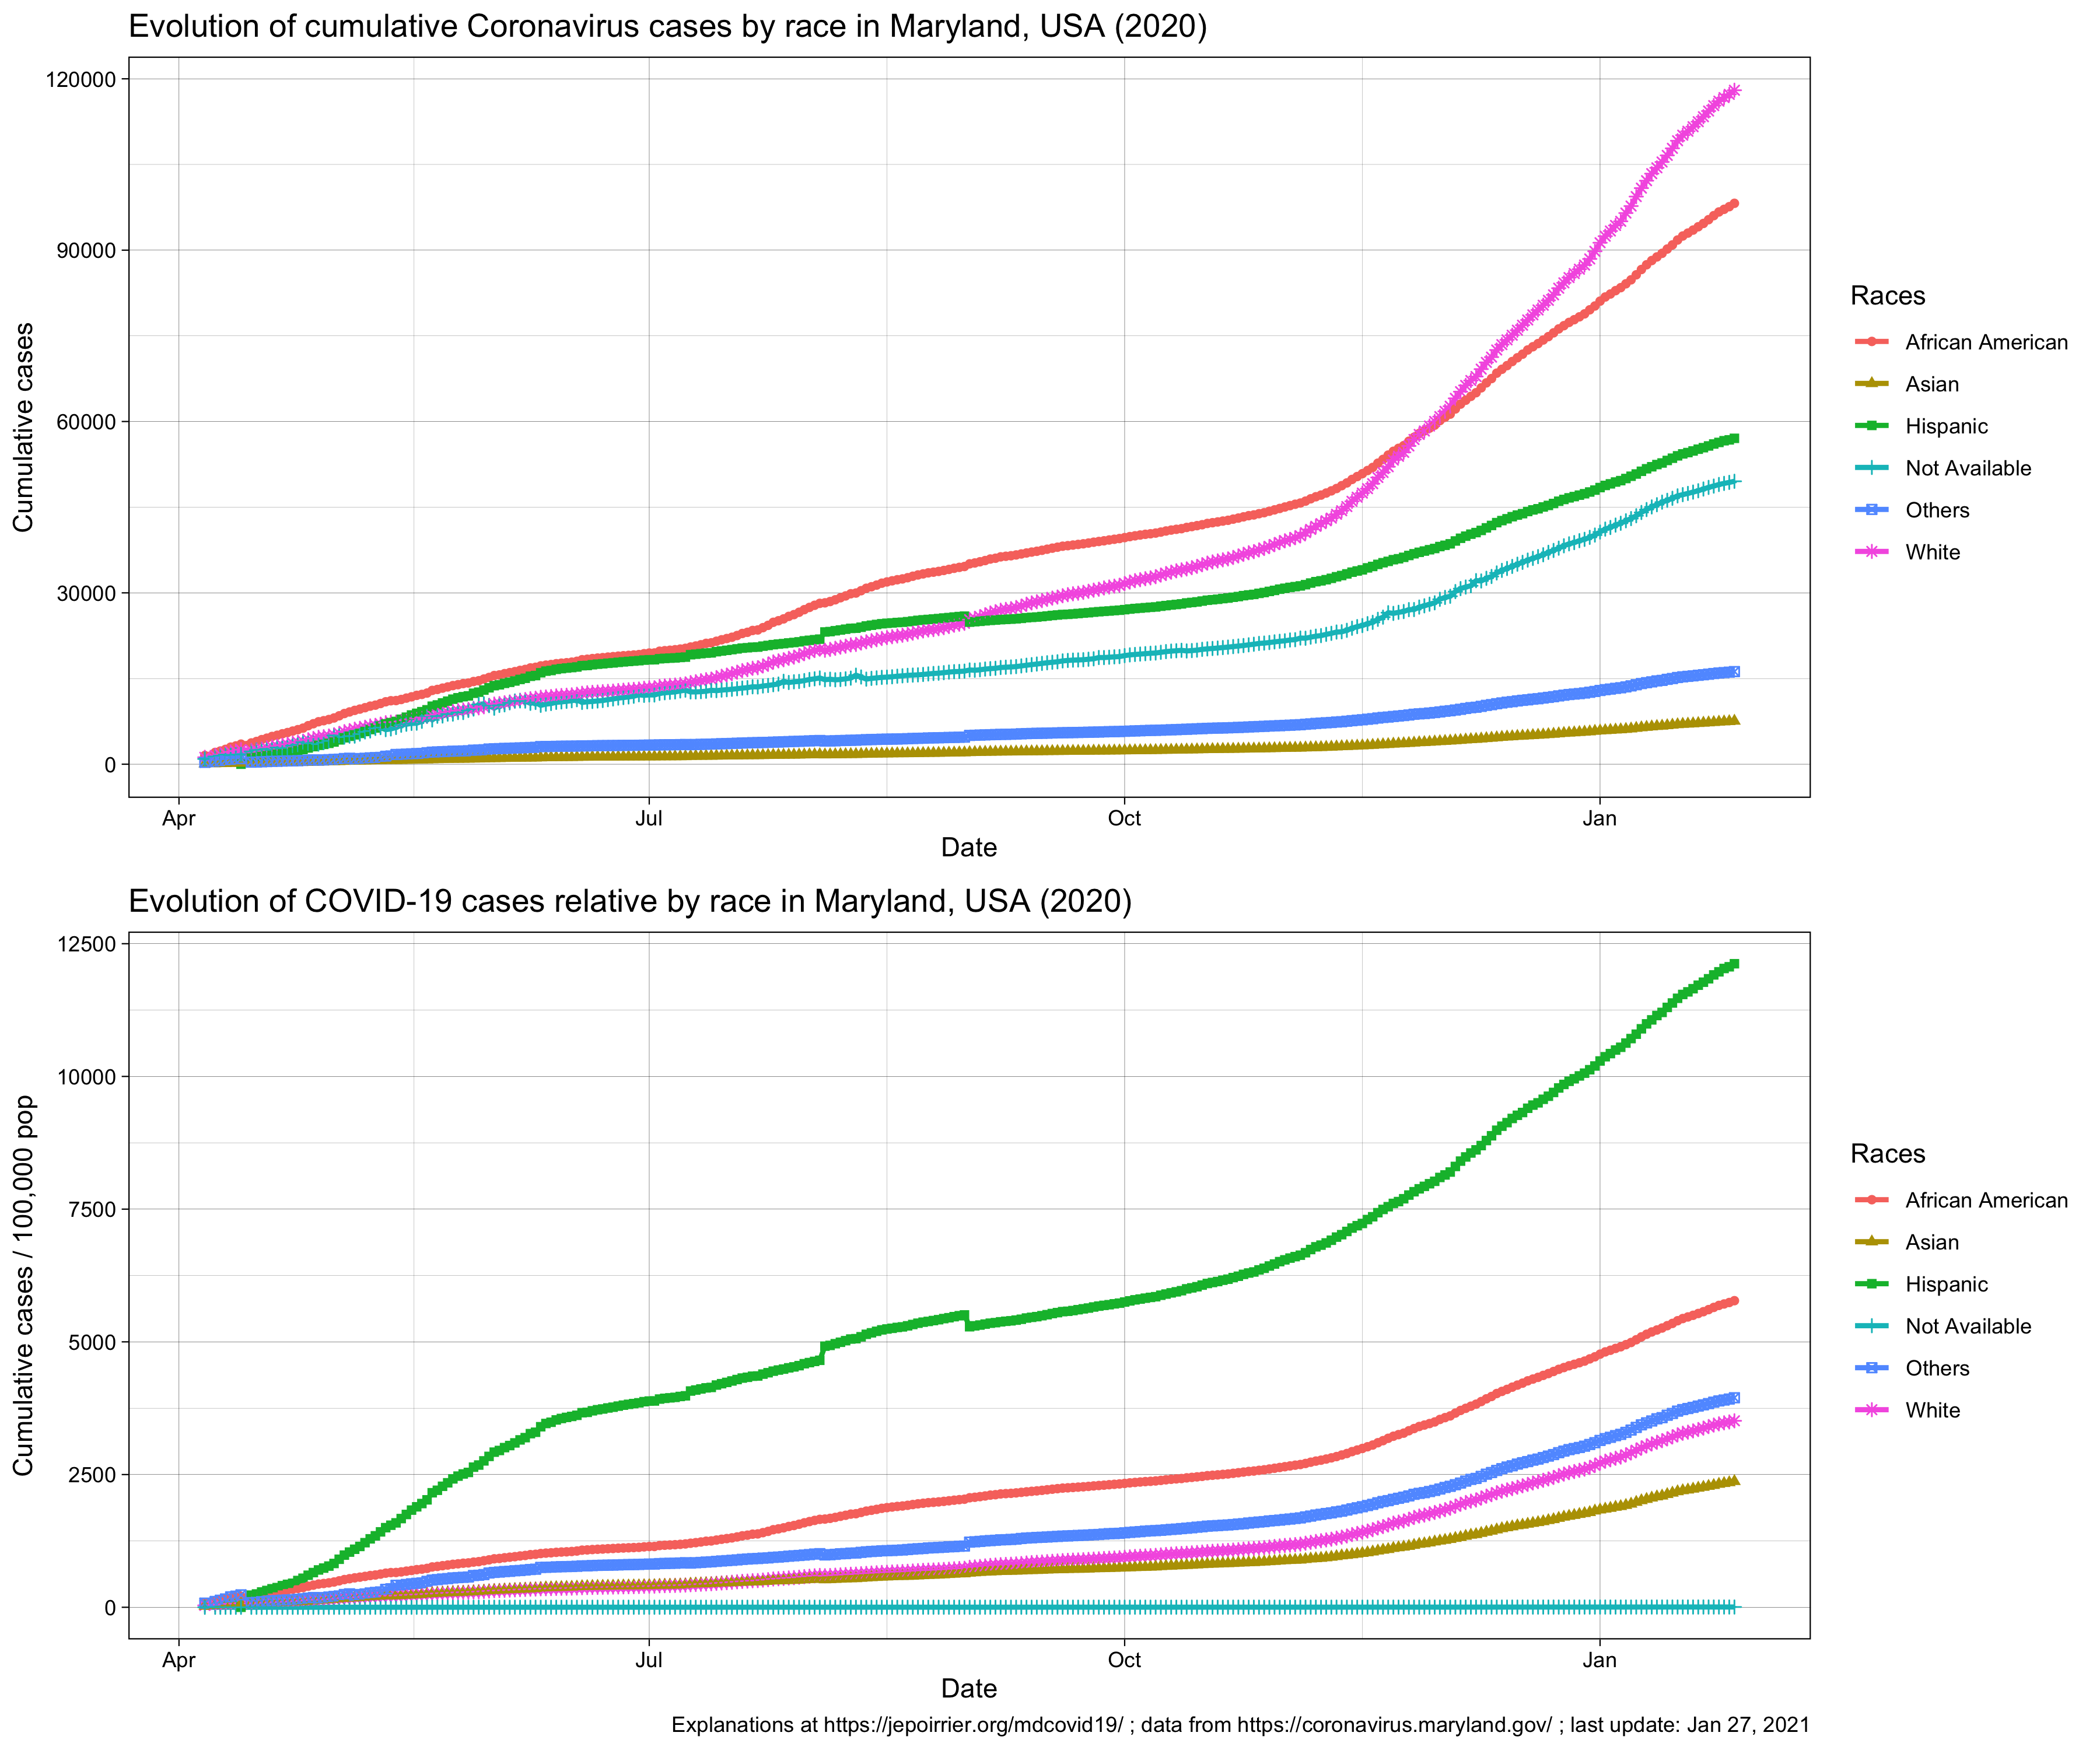 Trend in Coronavirus cases by race in Maryland, MD, USA, 2020